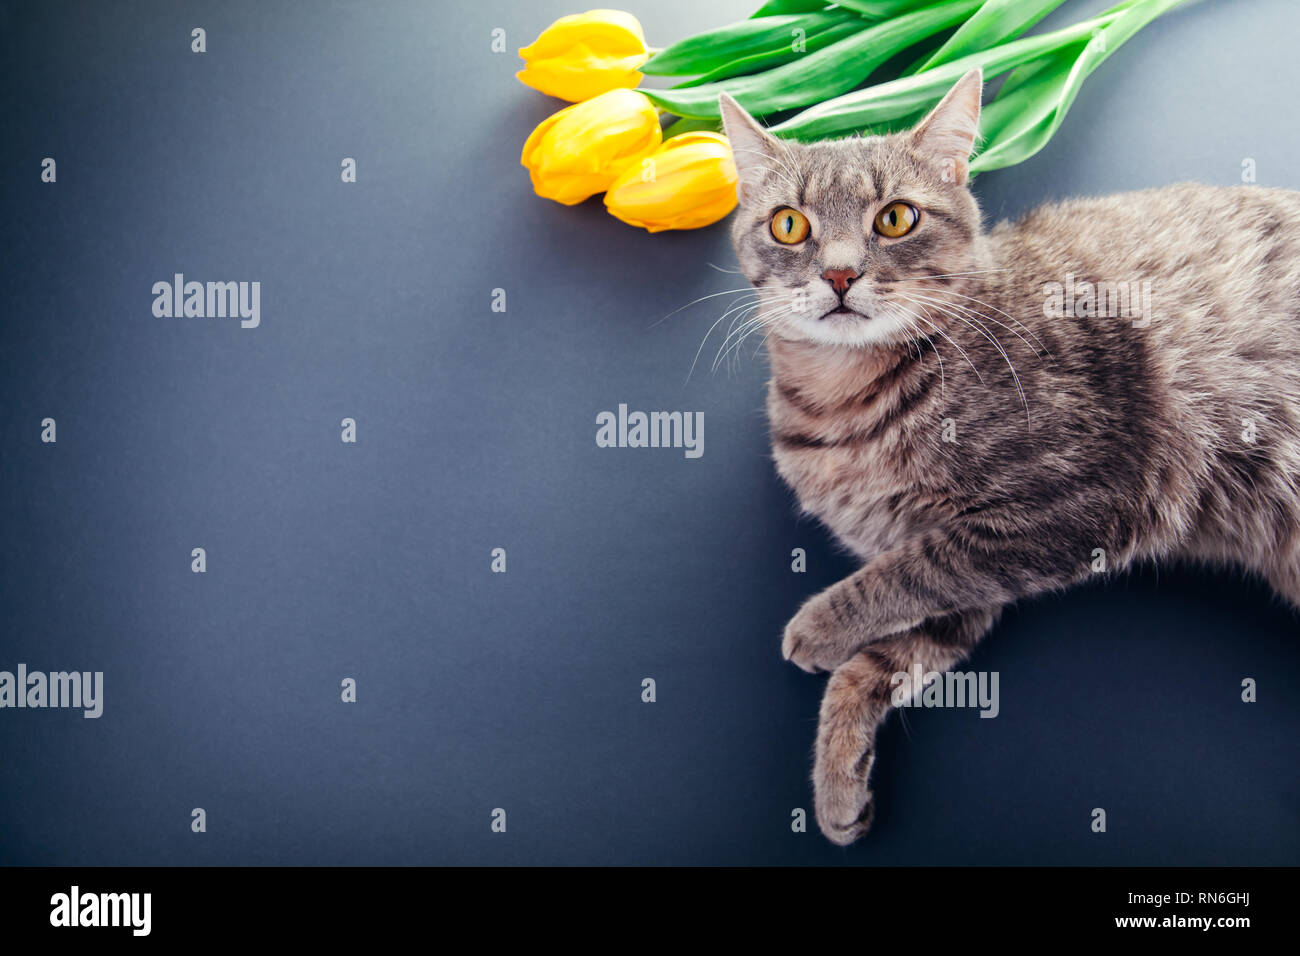 Women's day greeting card. Grey cat lying by yellow tulips. Copy space - Stock Image